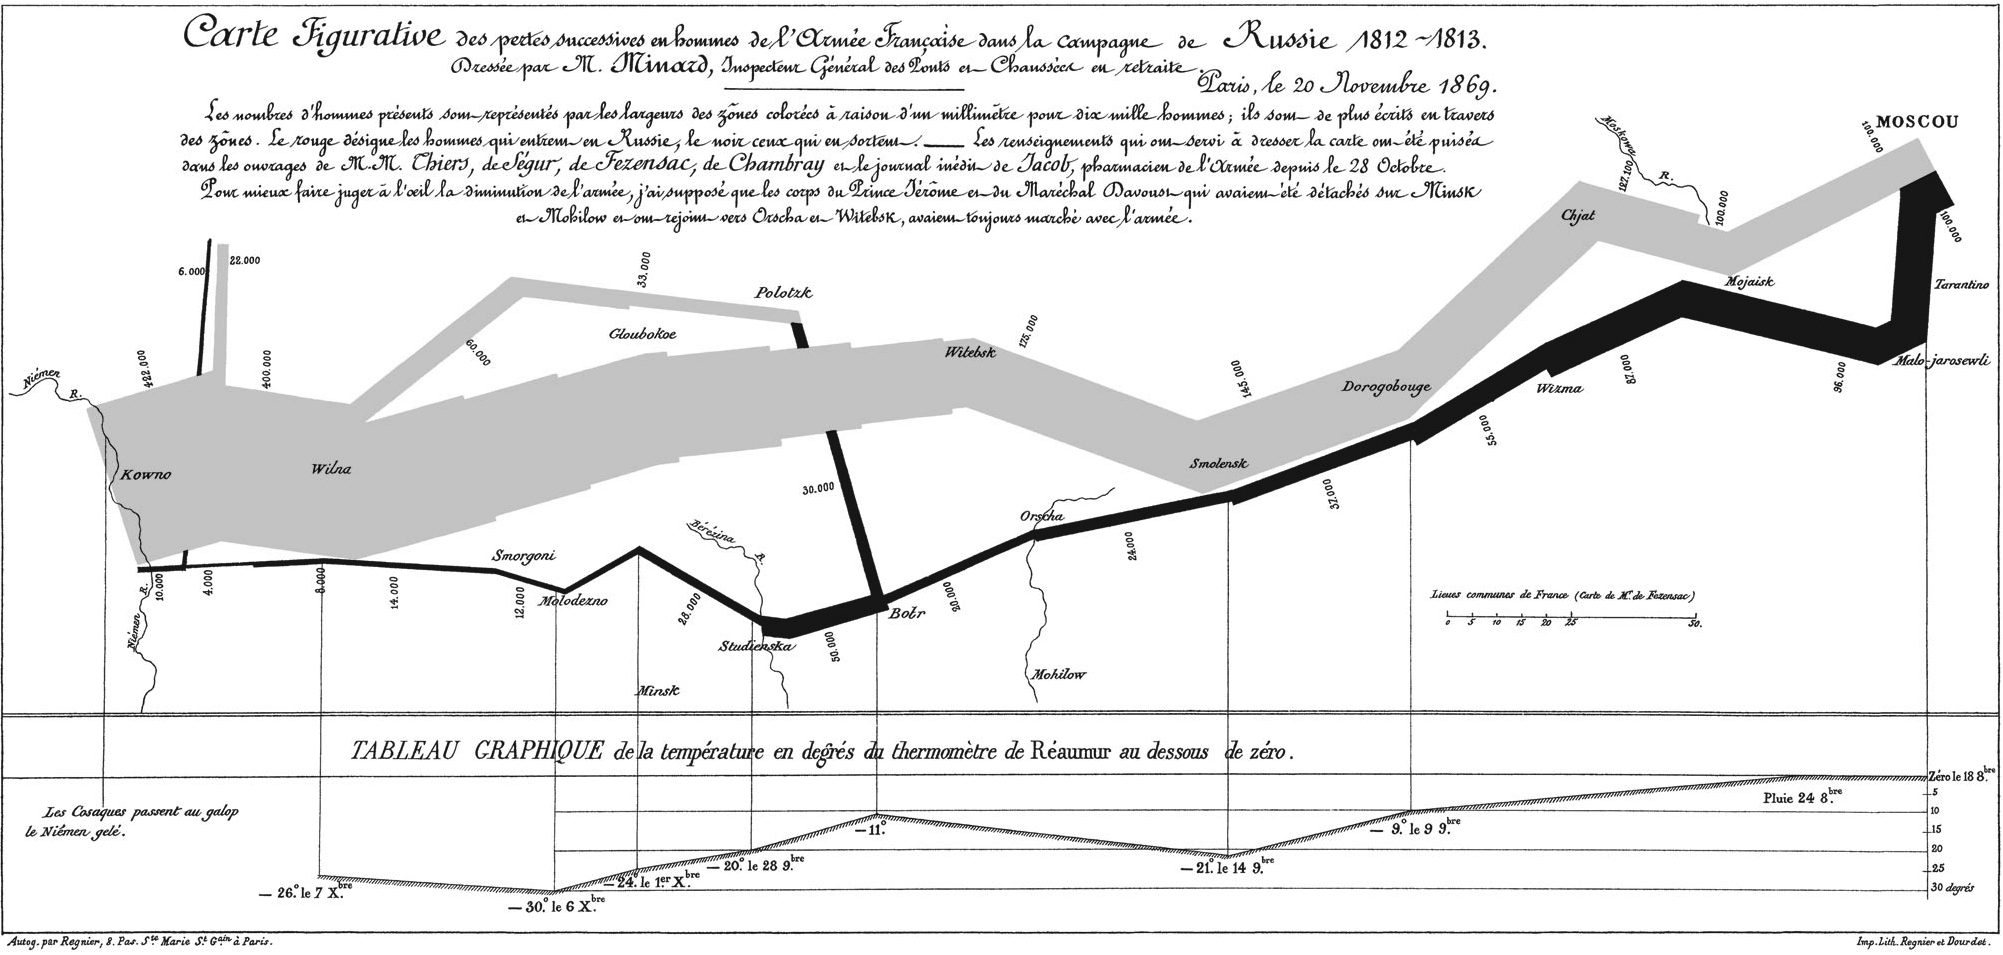 Charles Minard's Map of Napolean's 1812 Russian Campaign